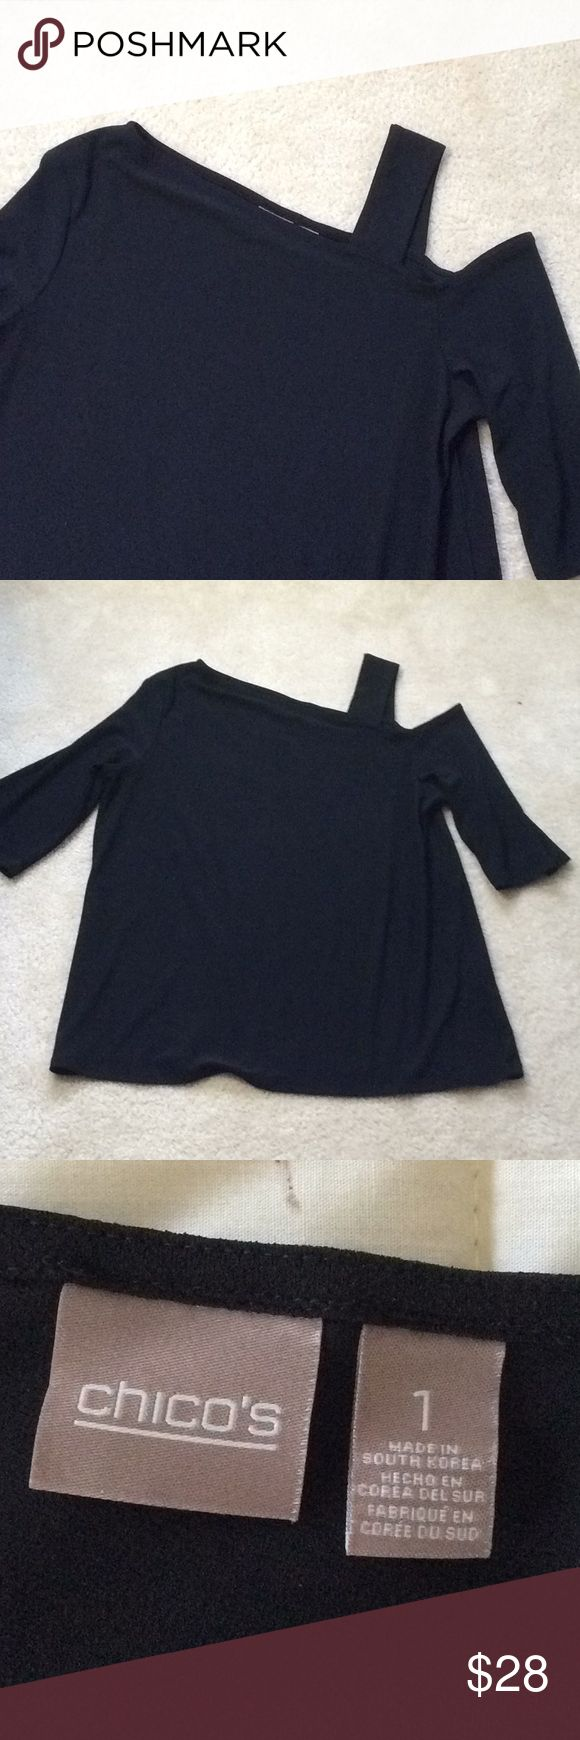 """Asymmetrical Top A new take on the cold shoulder.  Bra friendly strap.  Bust 20"""", length about 25"""".  Excellent condition.  Polyester and spandex mean comfort and no wrinkles.   Chico's size 1. Chico's Tops"""